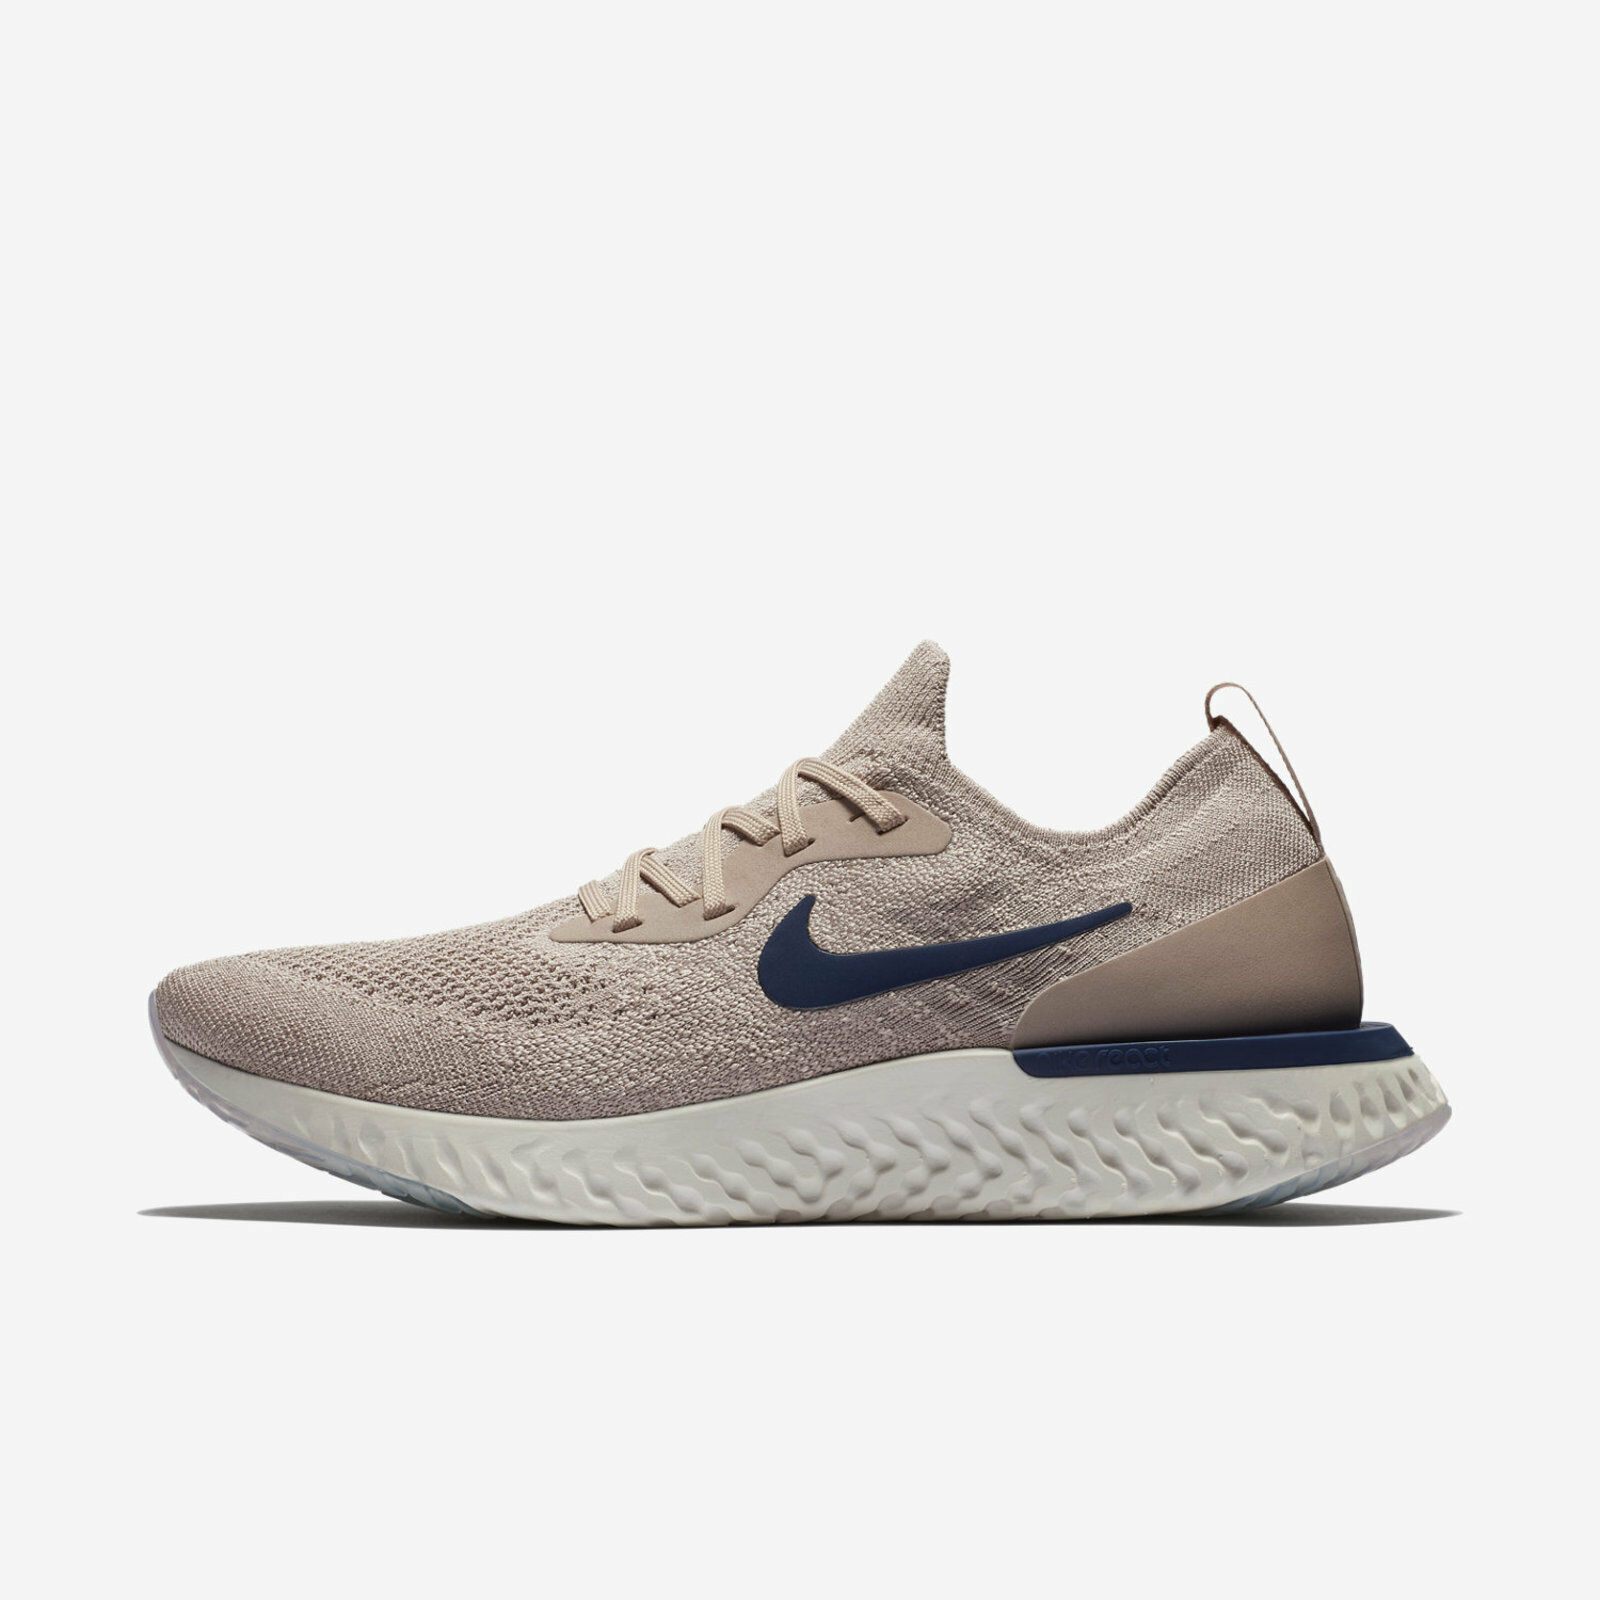 Nike Epic React Flyknit [AQ0067-201] Men Running Shoes Diffused Taupe/Blue Void